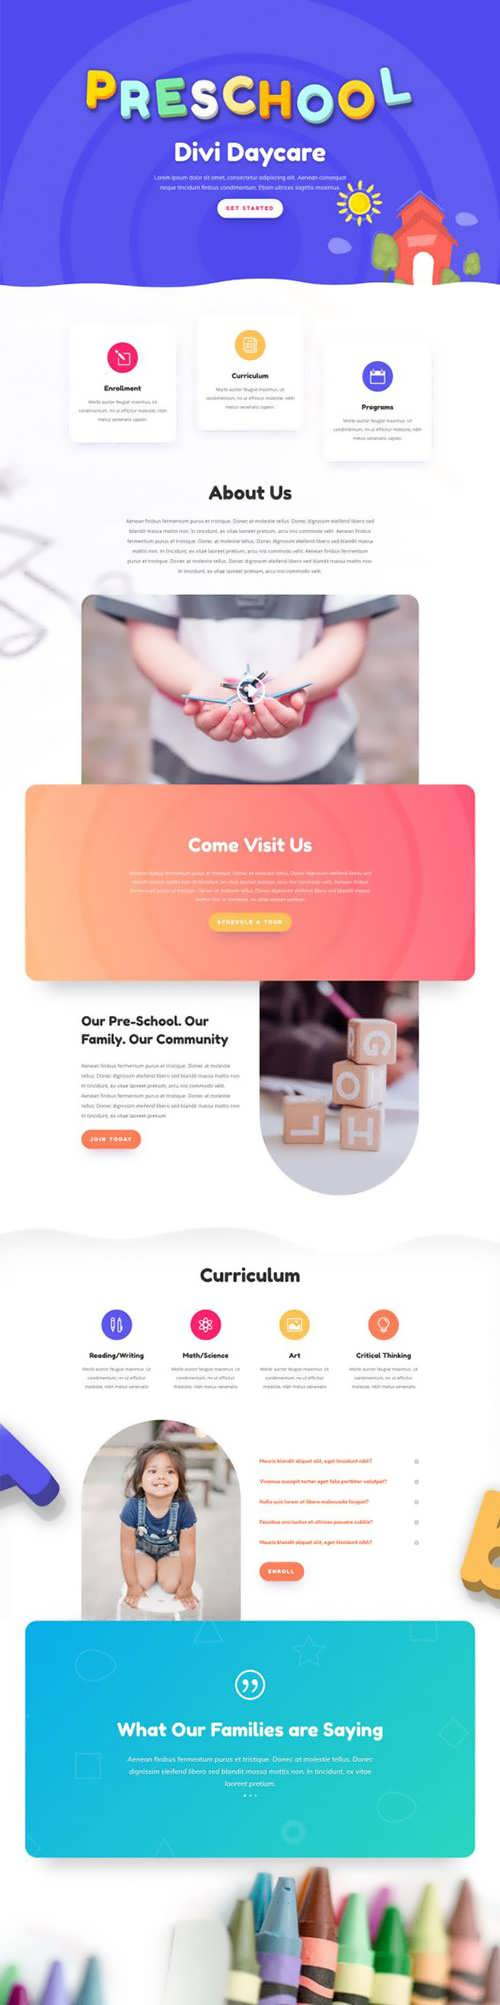 daycare landing page